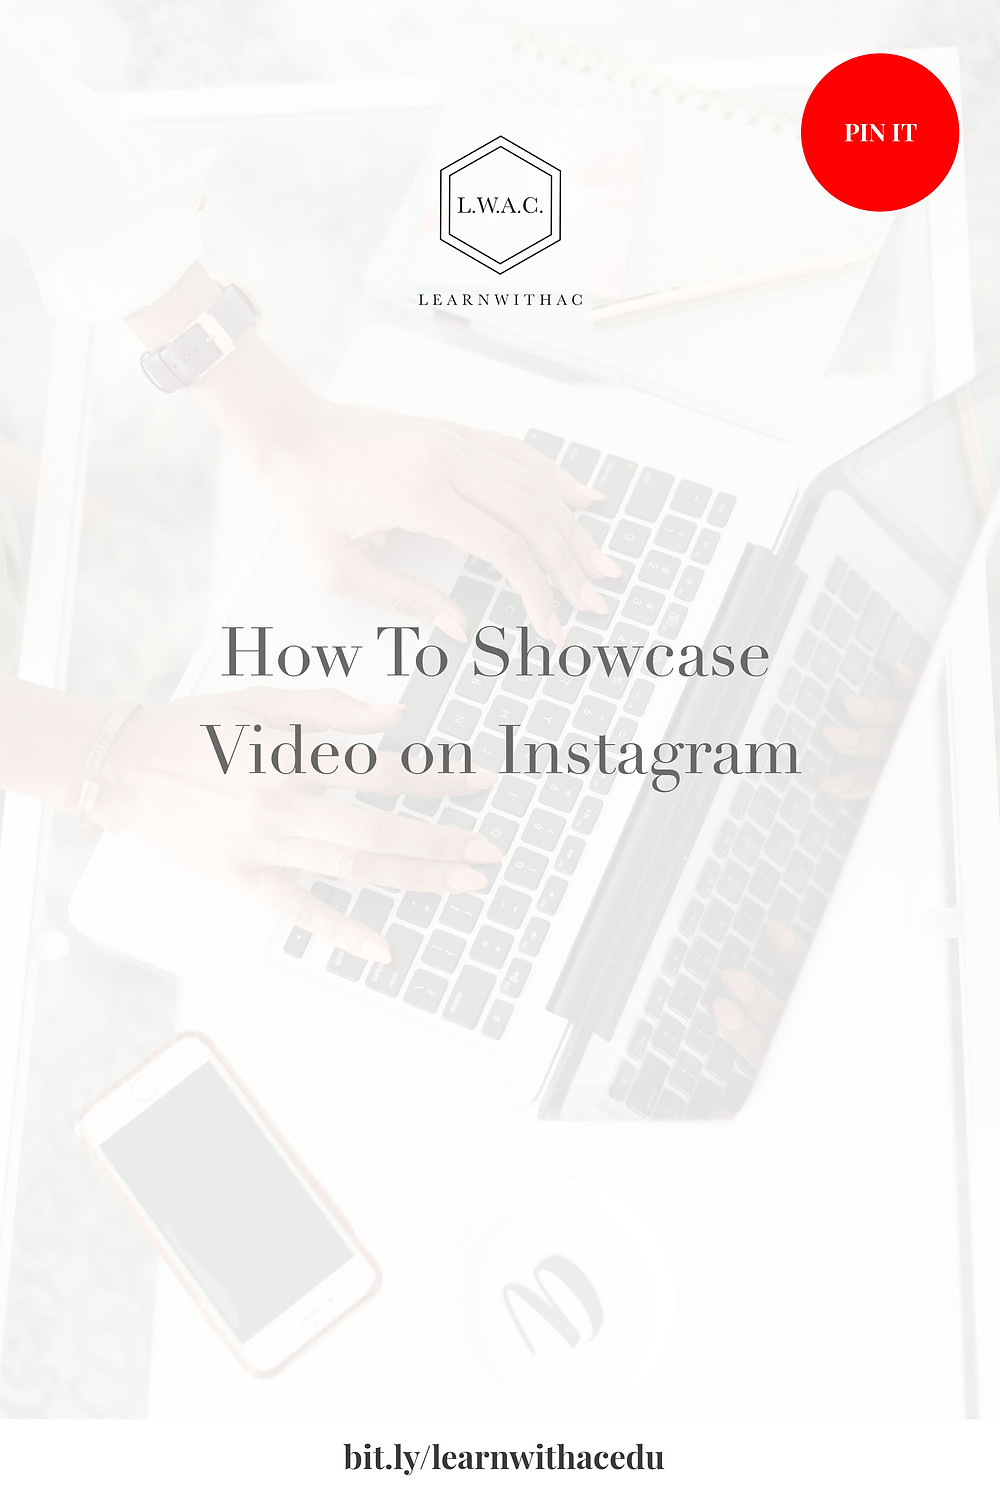 How To Showcase Video on Instagram